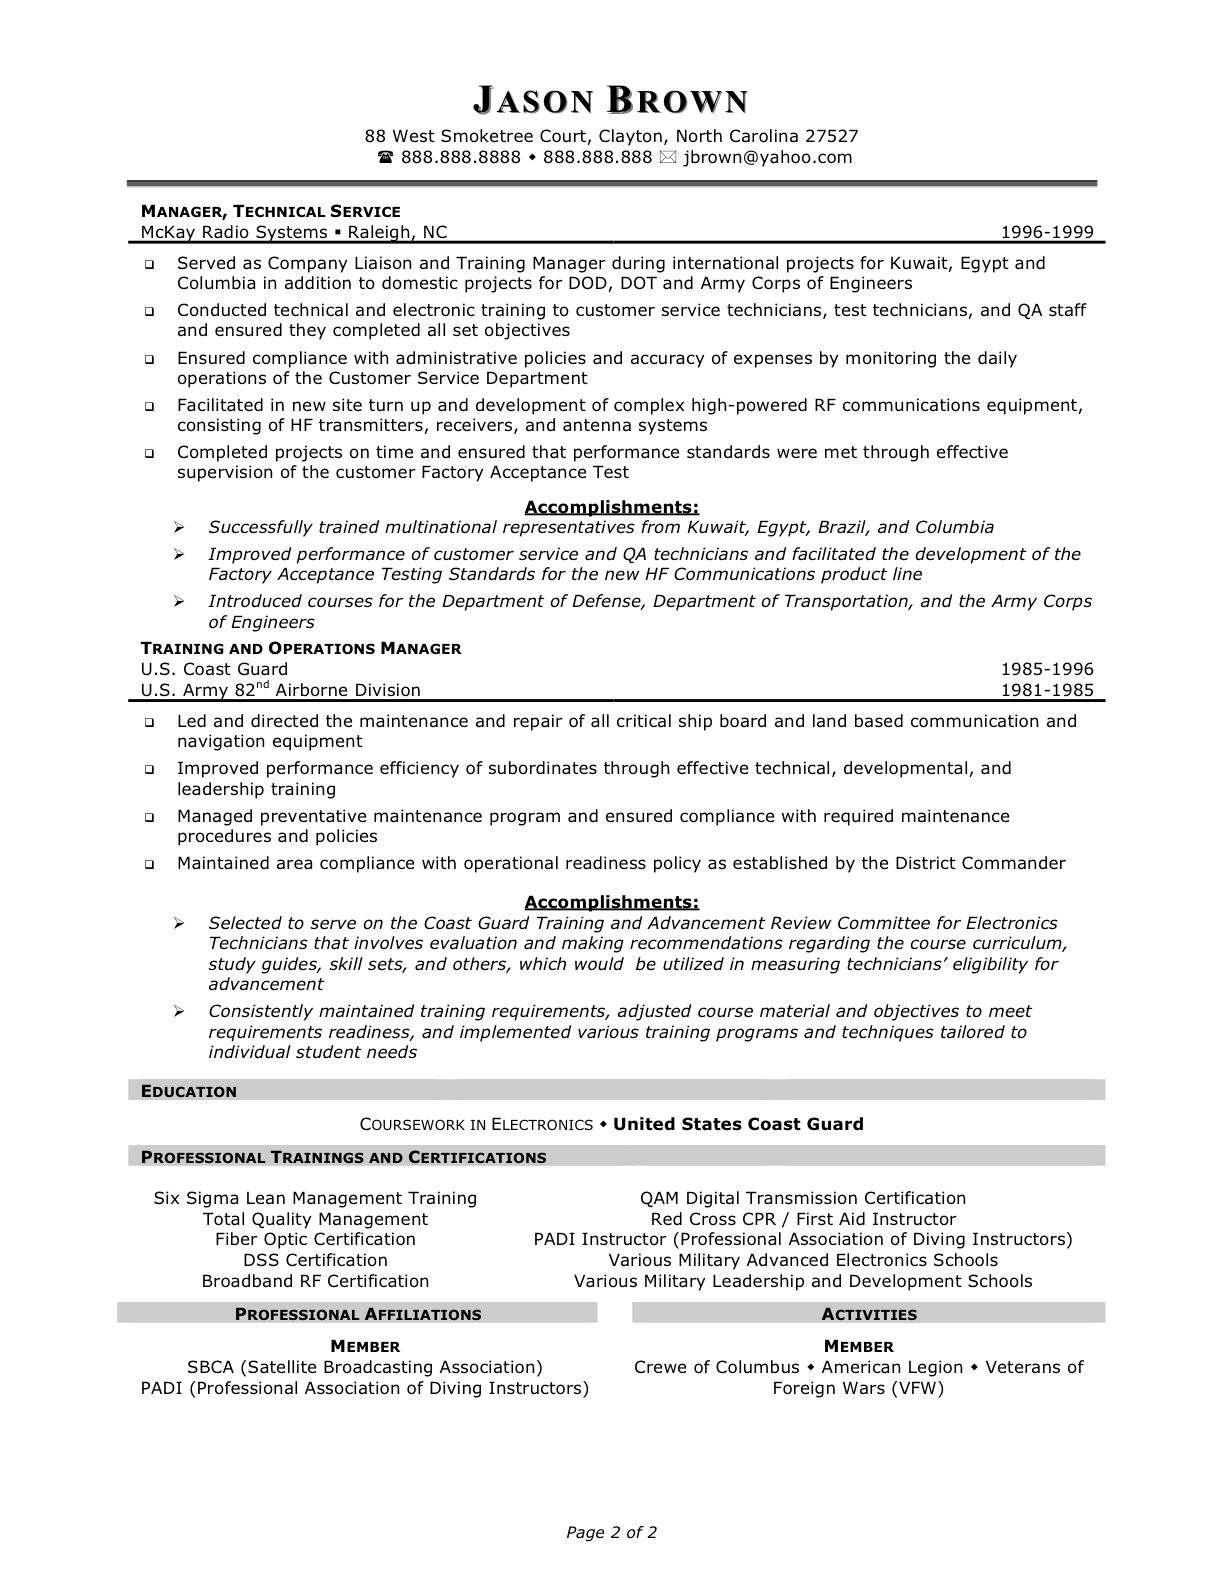 Enterprise Management Trainee Program Resume Http Www